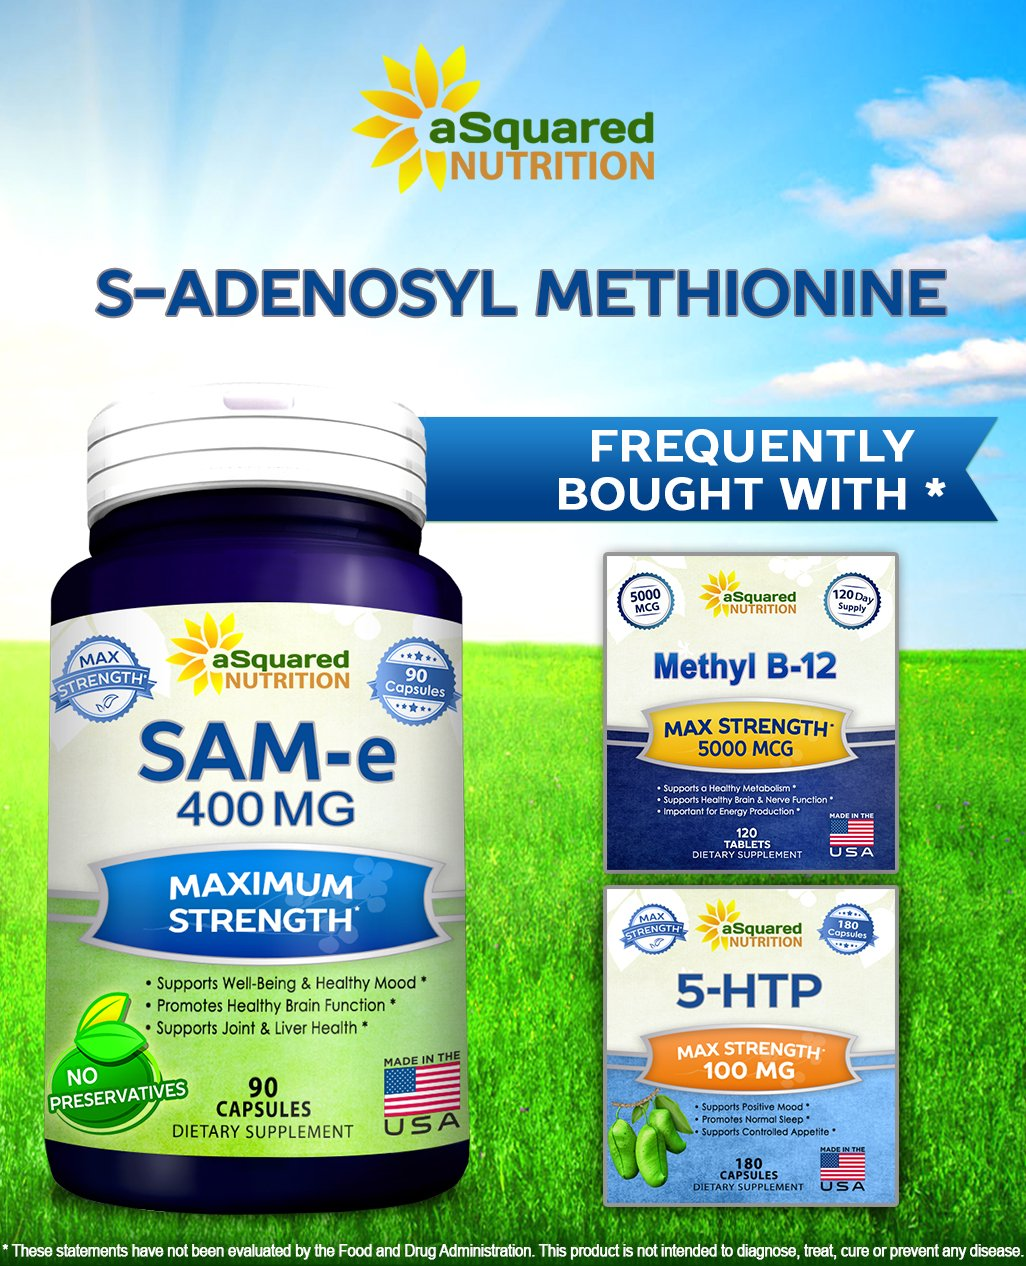 Pure Sam E 400mg Supplement 90 Capsules Same S Nutrimax Healthy Joint 60 Tablet Adenosyl Methionine To Support Mood Health And Brain Function Extra Strength